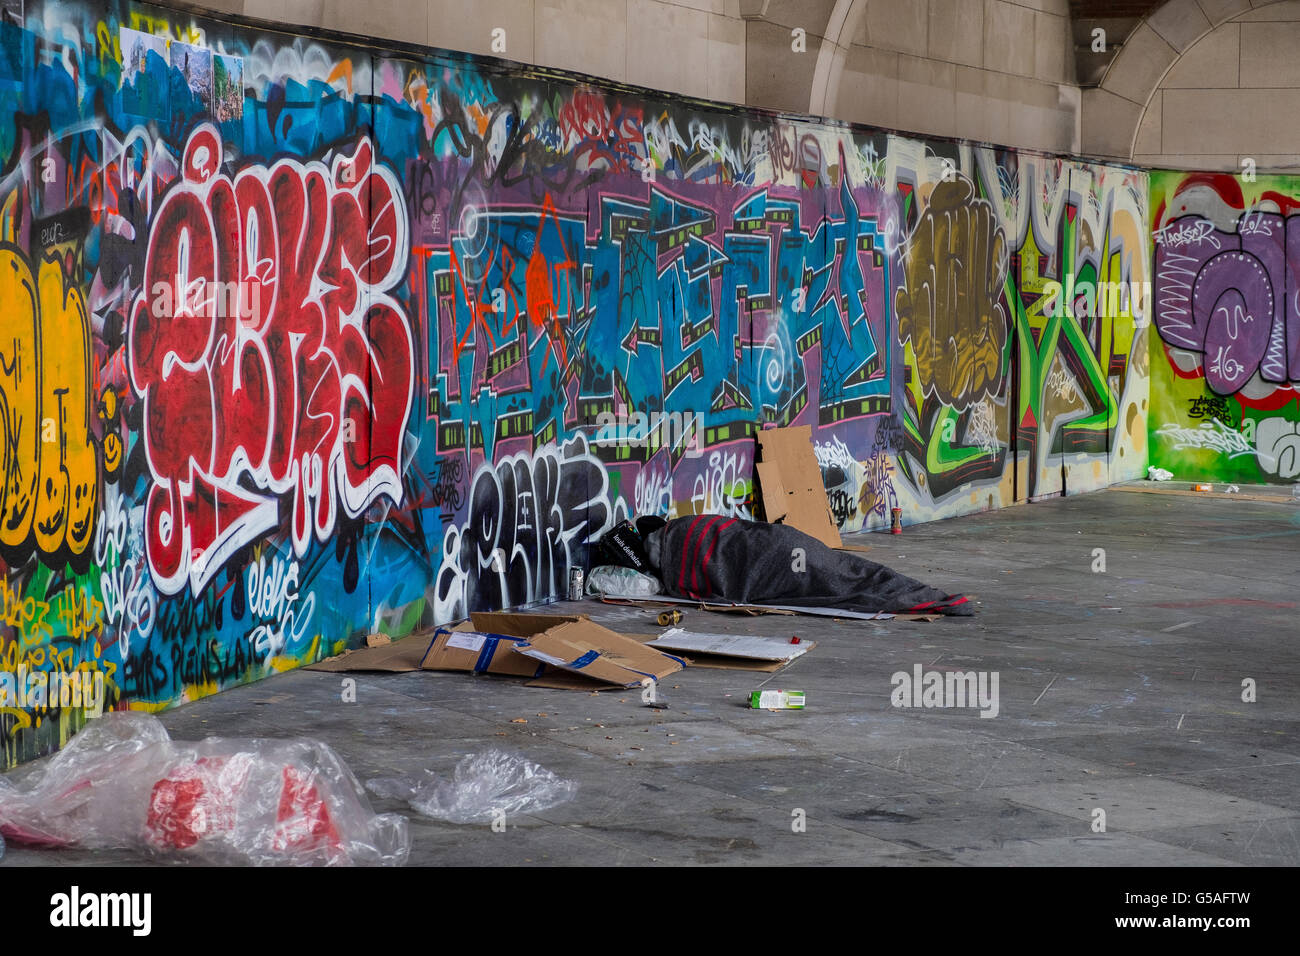 homeless vagrant person sleeping rough street - Stock Image